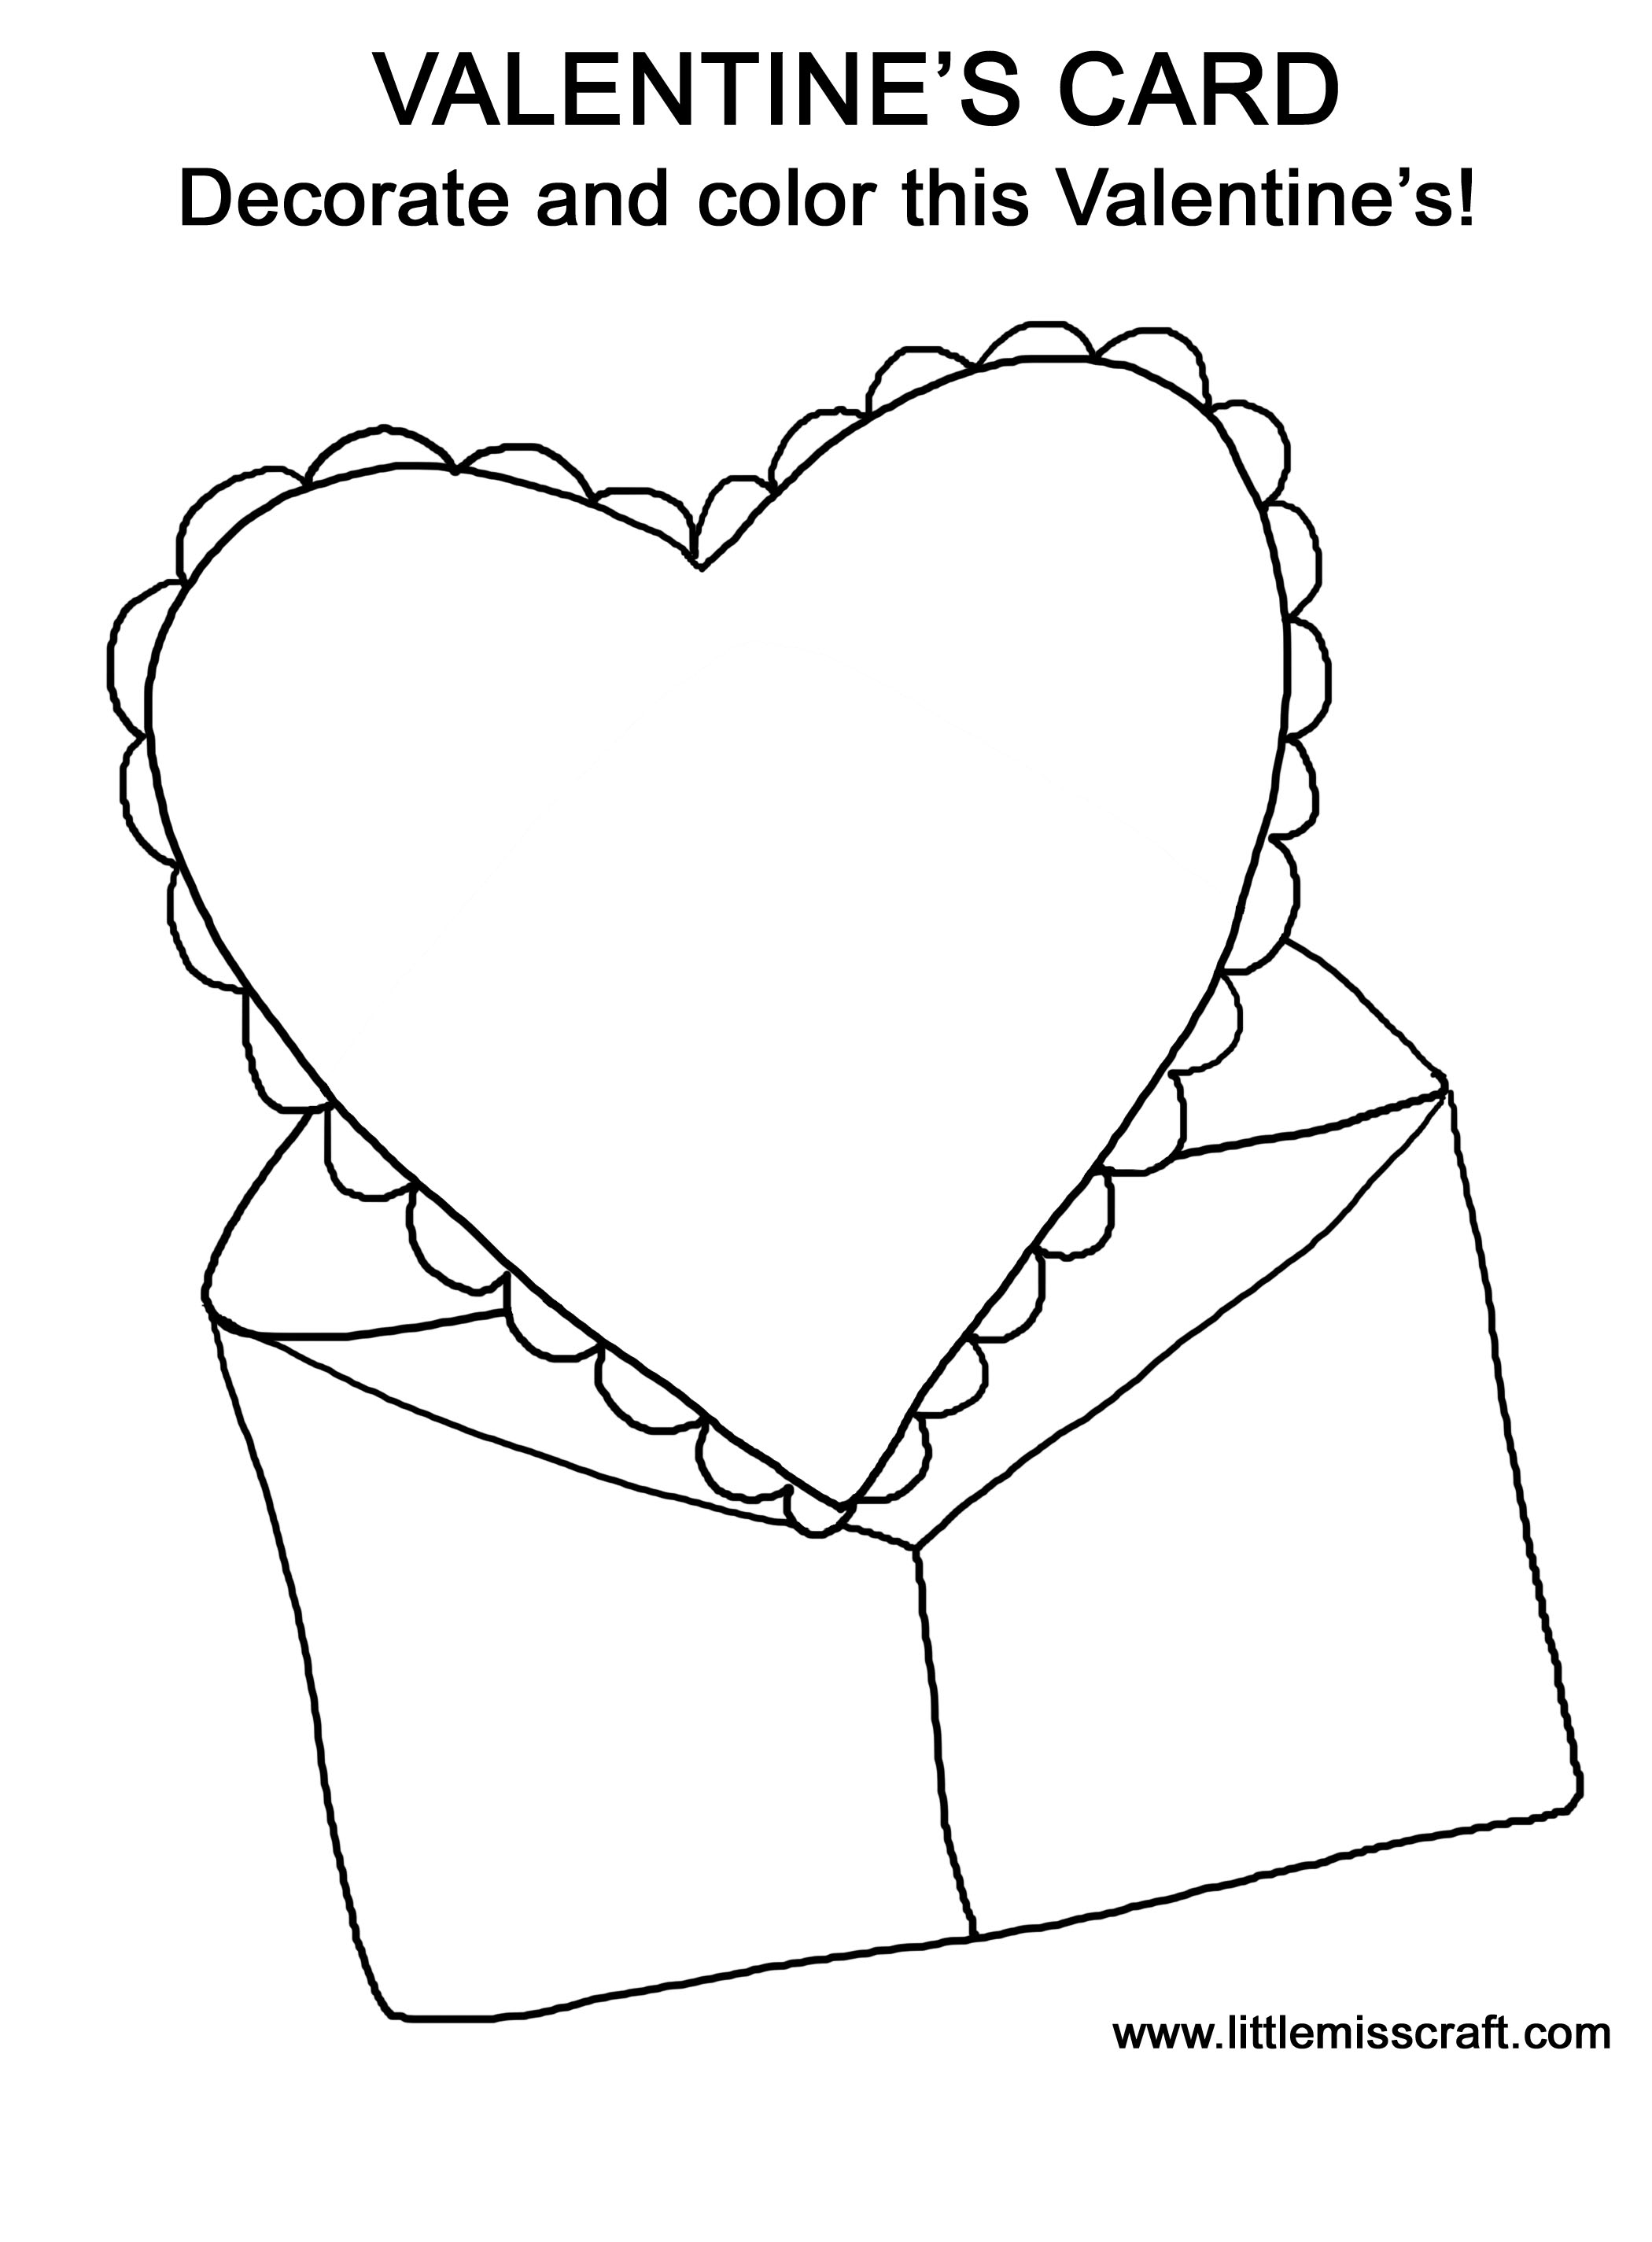 Valentines Card Drawing At Getdrawings Com Free For Personal Use